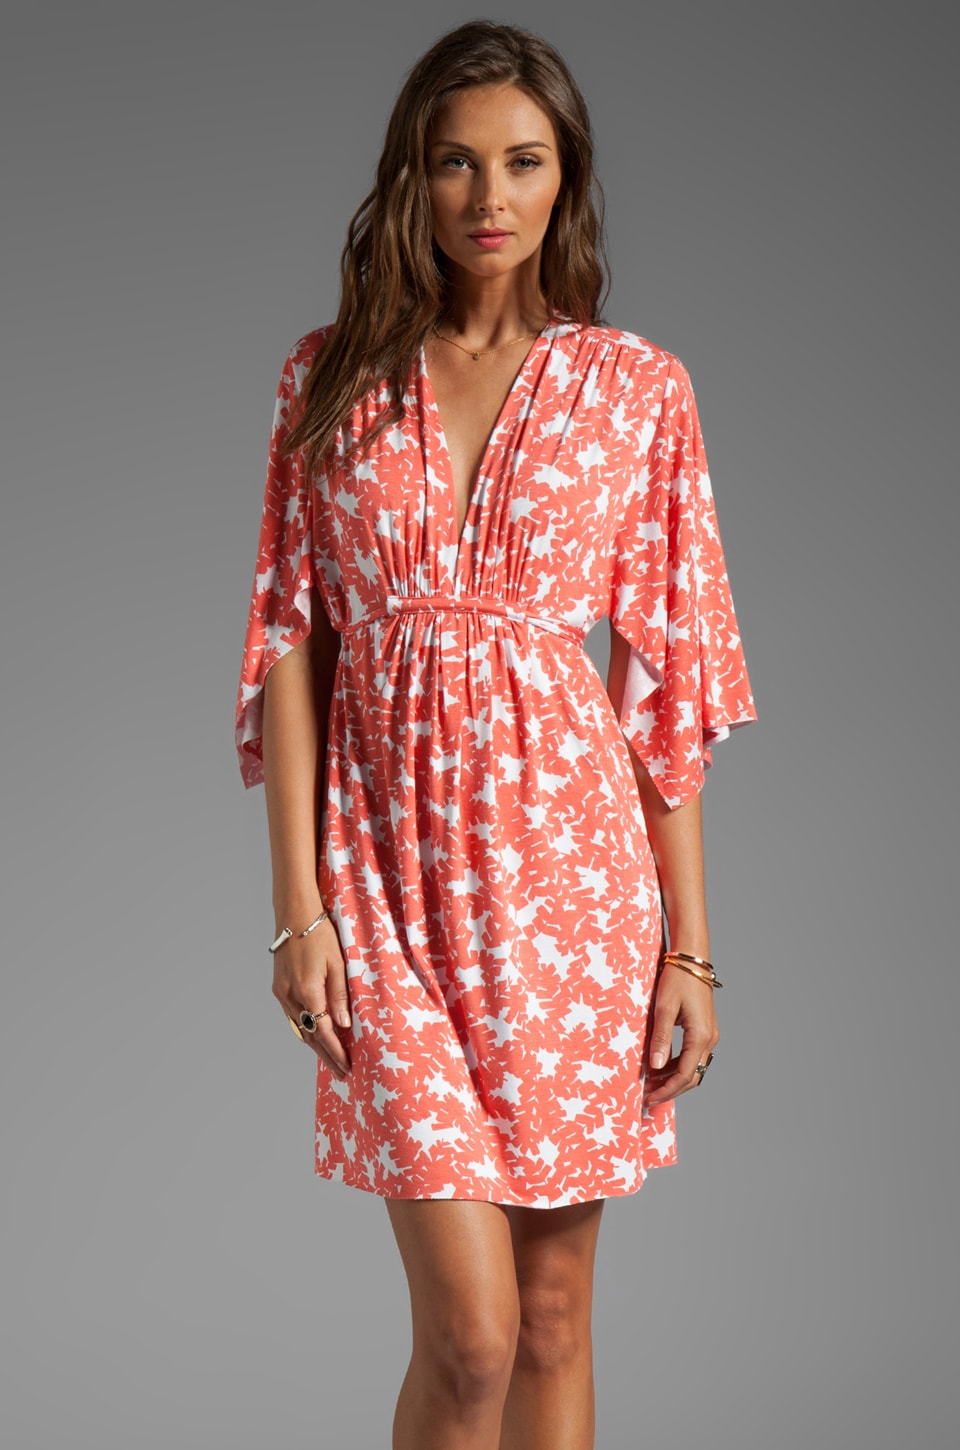 Rachel Pally Mini Caftan Dress in Apricot Bonsai